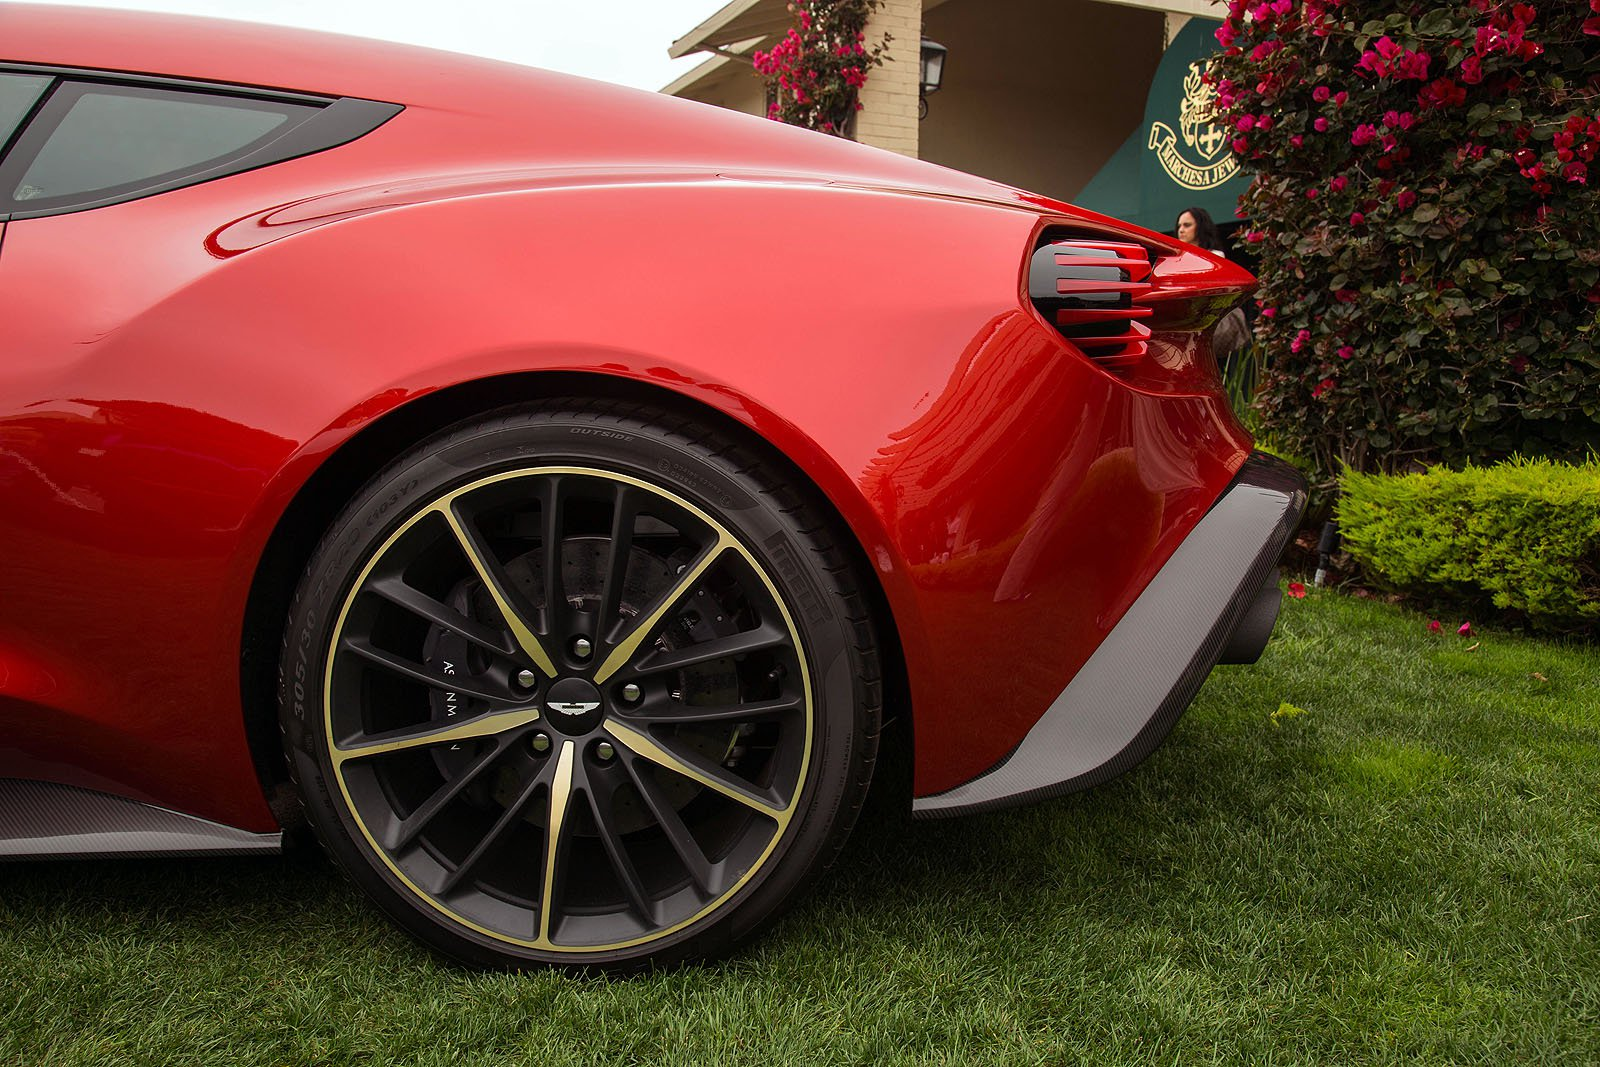 Top 5 Coolest Wheels on Production Cars